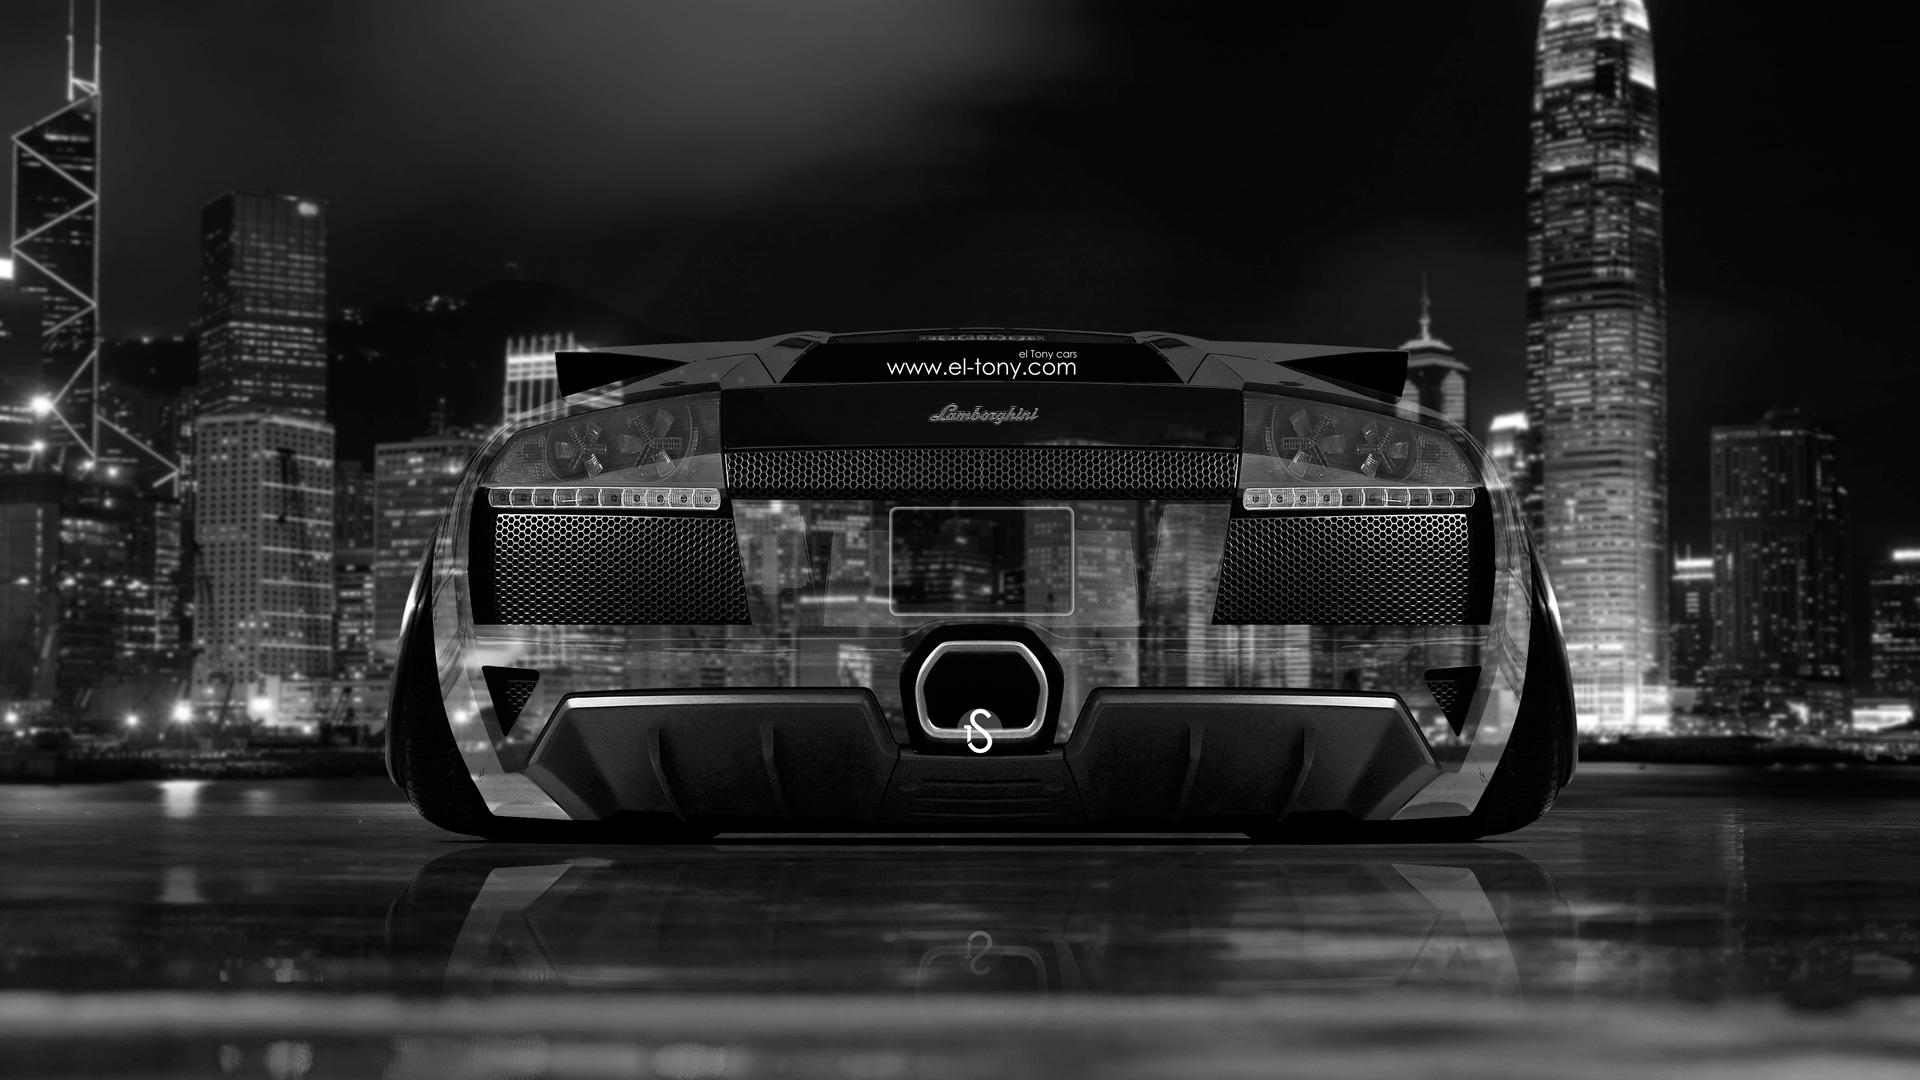 Etonnant ... Lamborghini Murcielago Back Crystal City Car 2014 Photoshop  ...